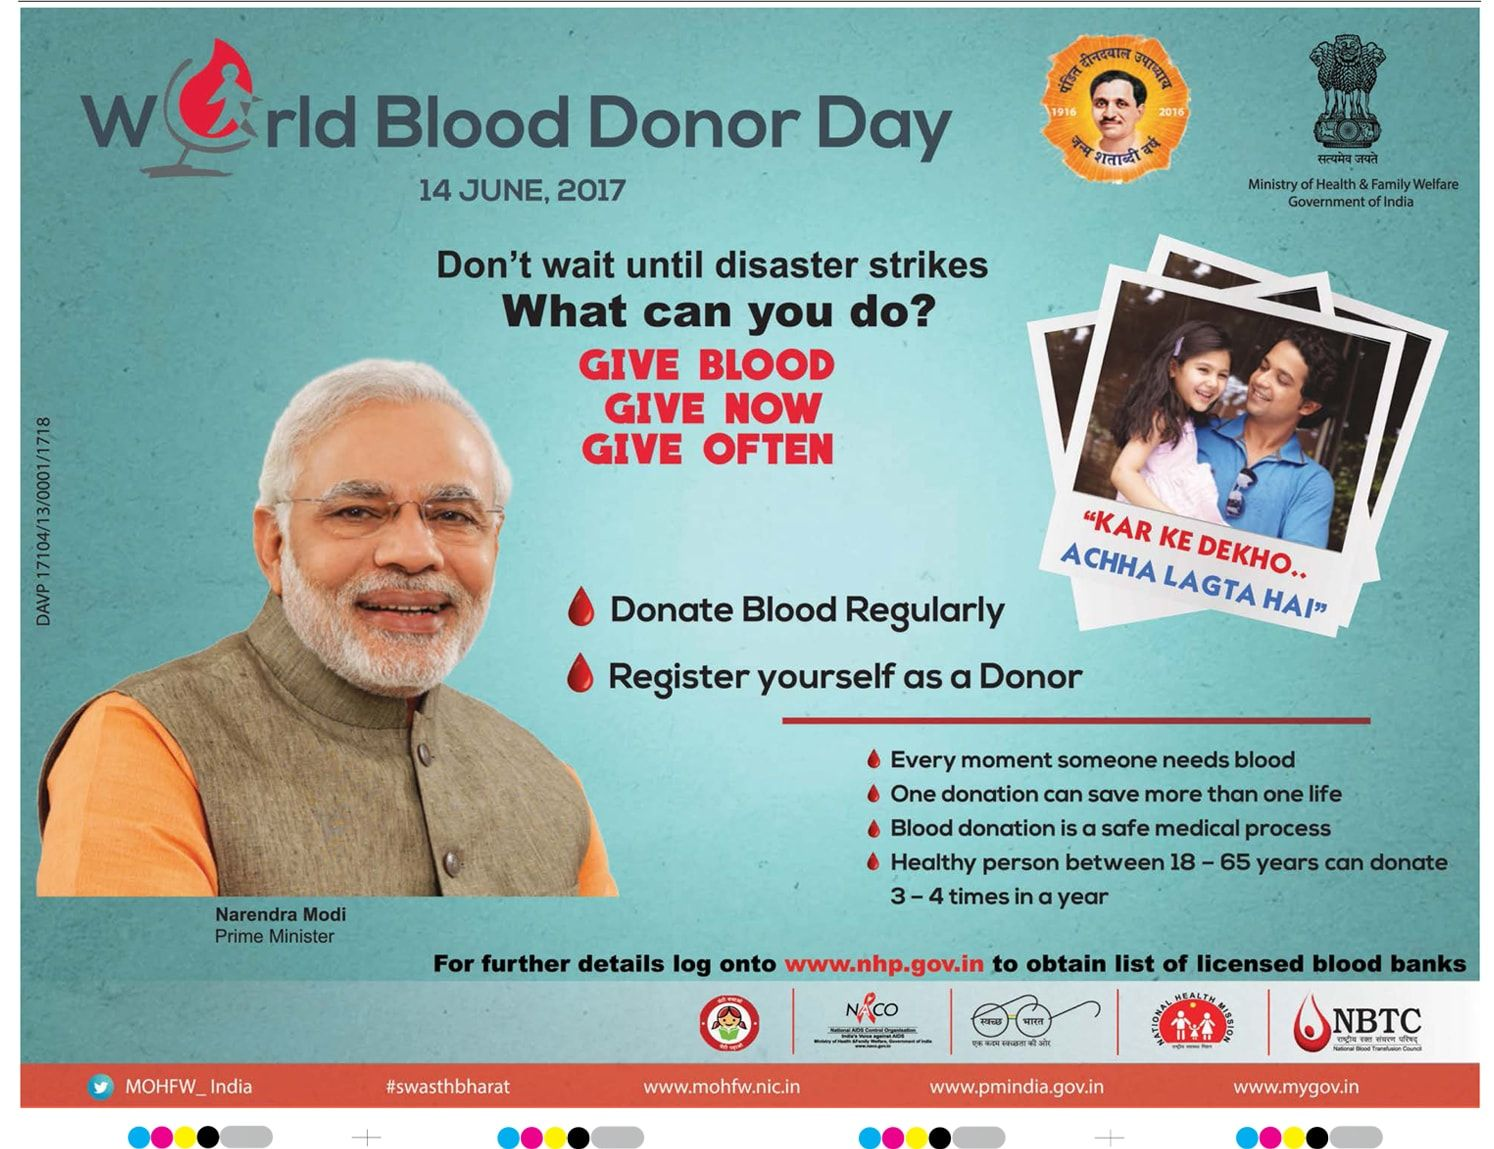 NBTC World Blood Donor Day Ministry of Health & Family